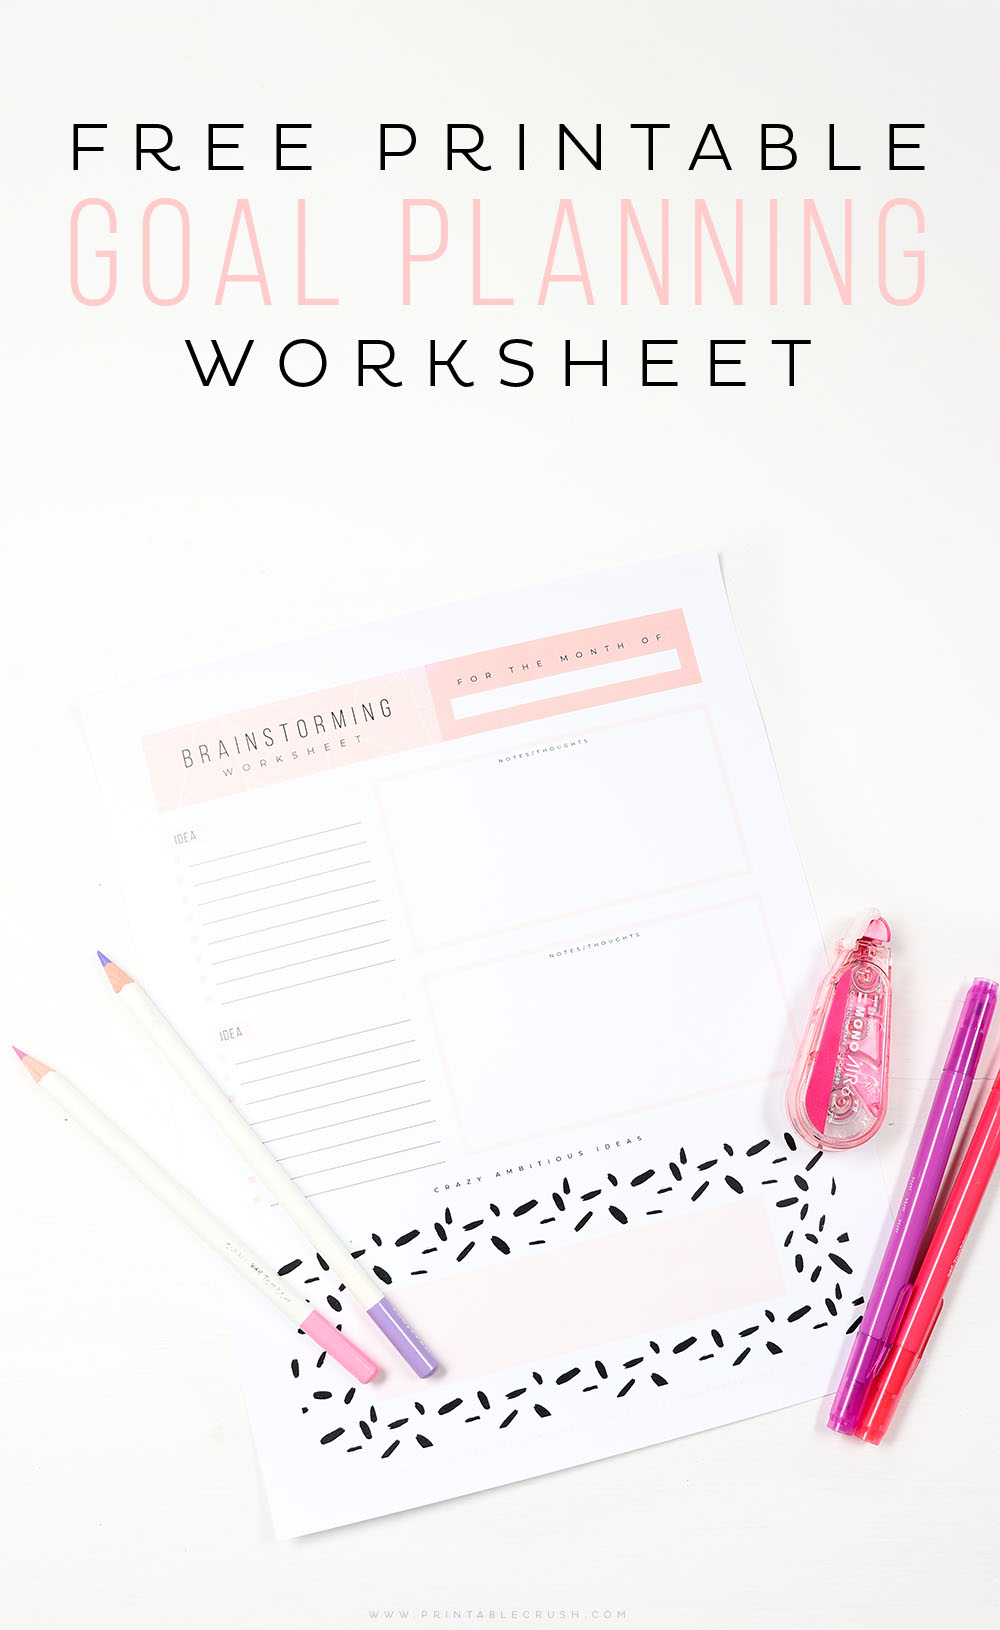 Download this FREE Printable Goal Planning Worksheet to get those amazing ideas out on paper!